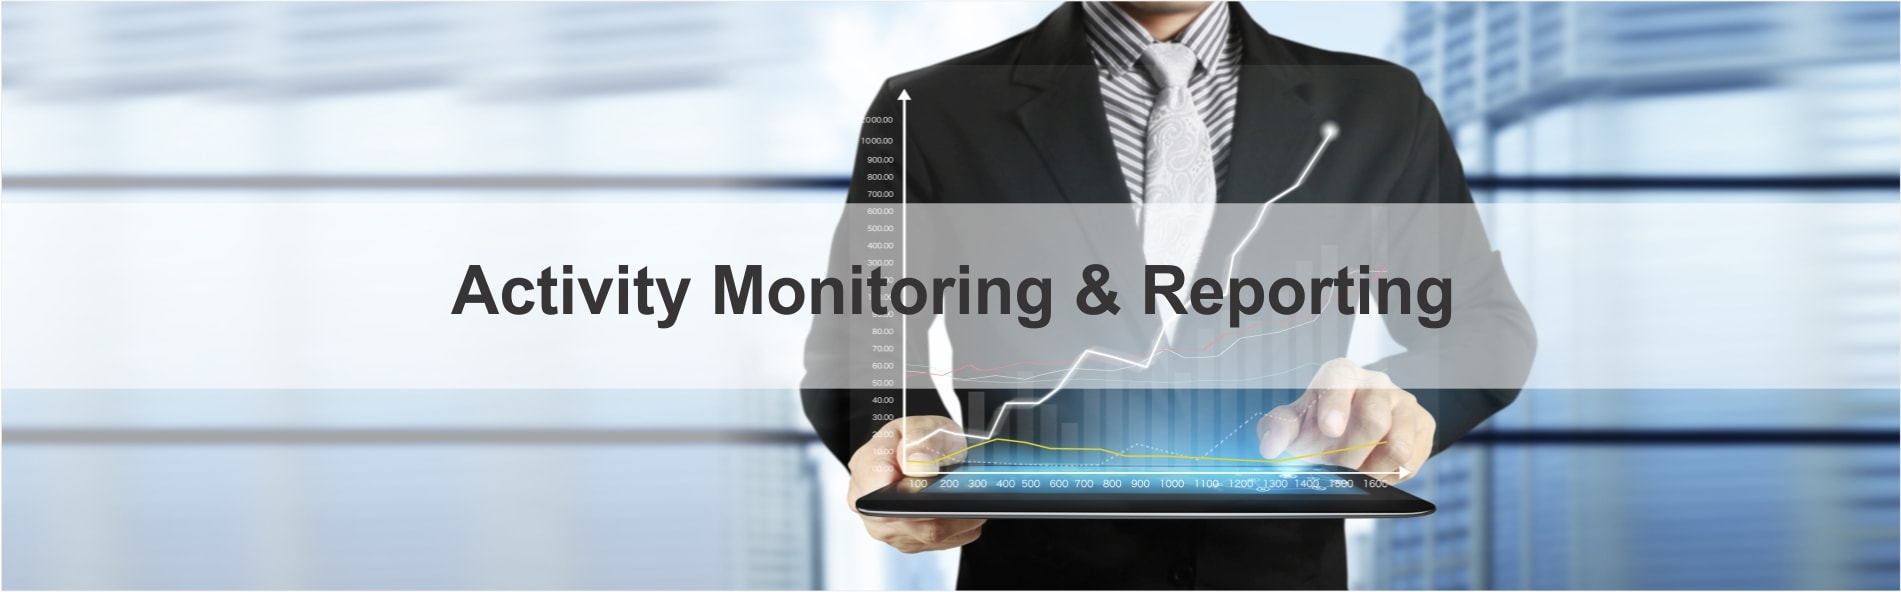 Activity Monitoring & Reporting